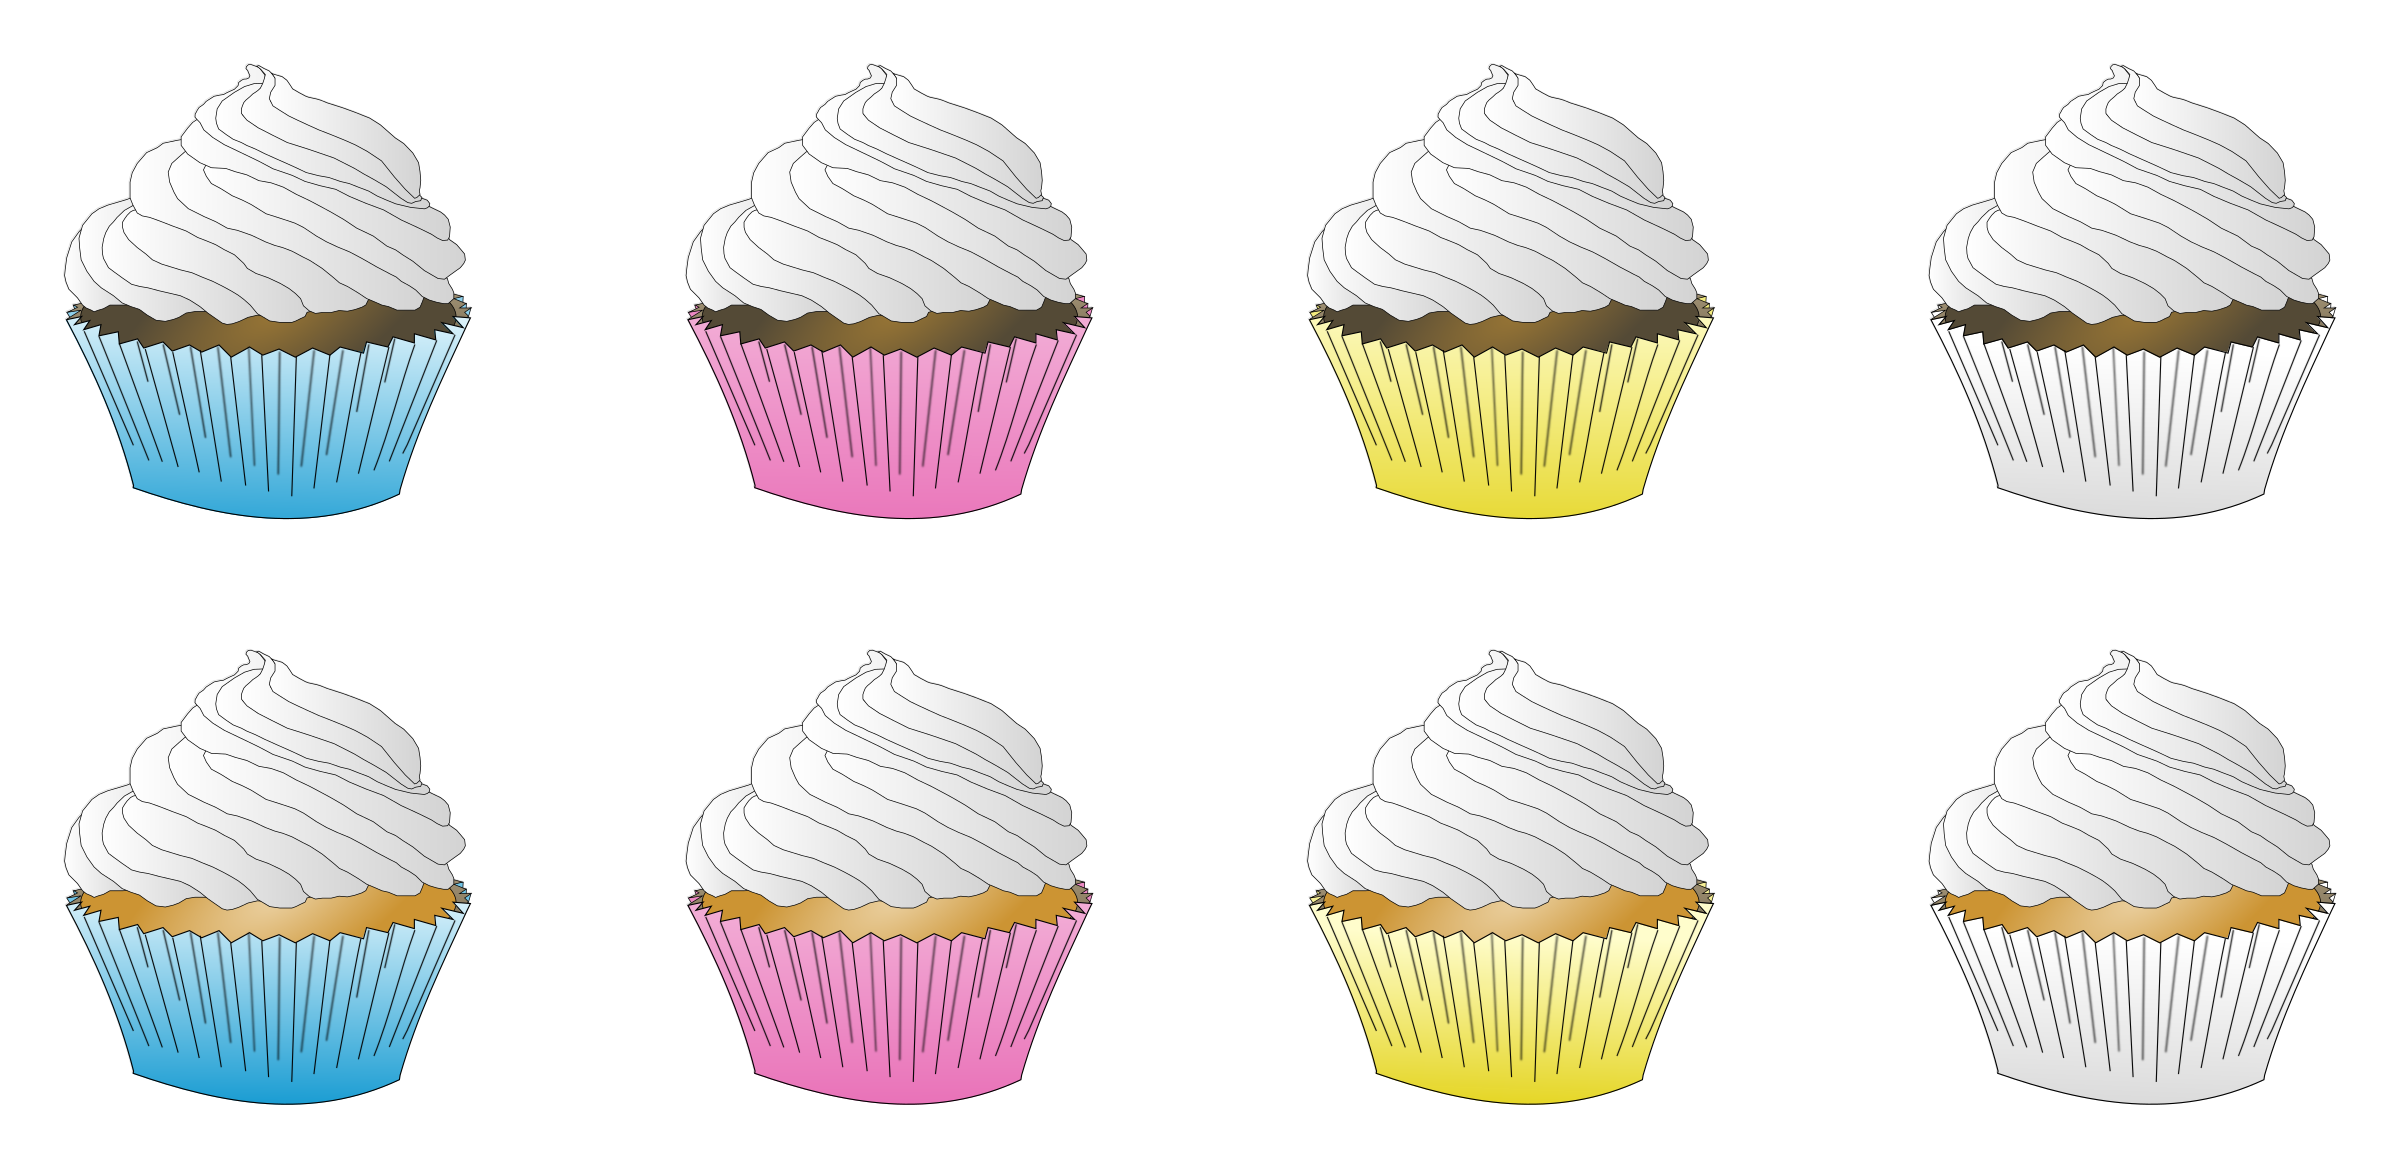 Assorted White Frosted Cupcakes by PinkJellyfish